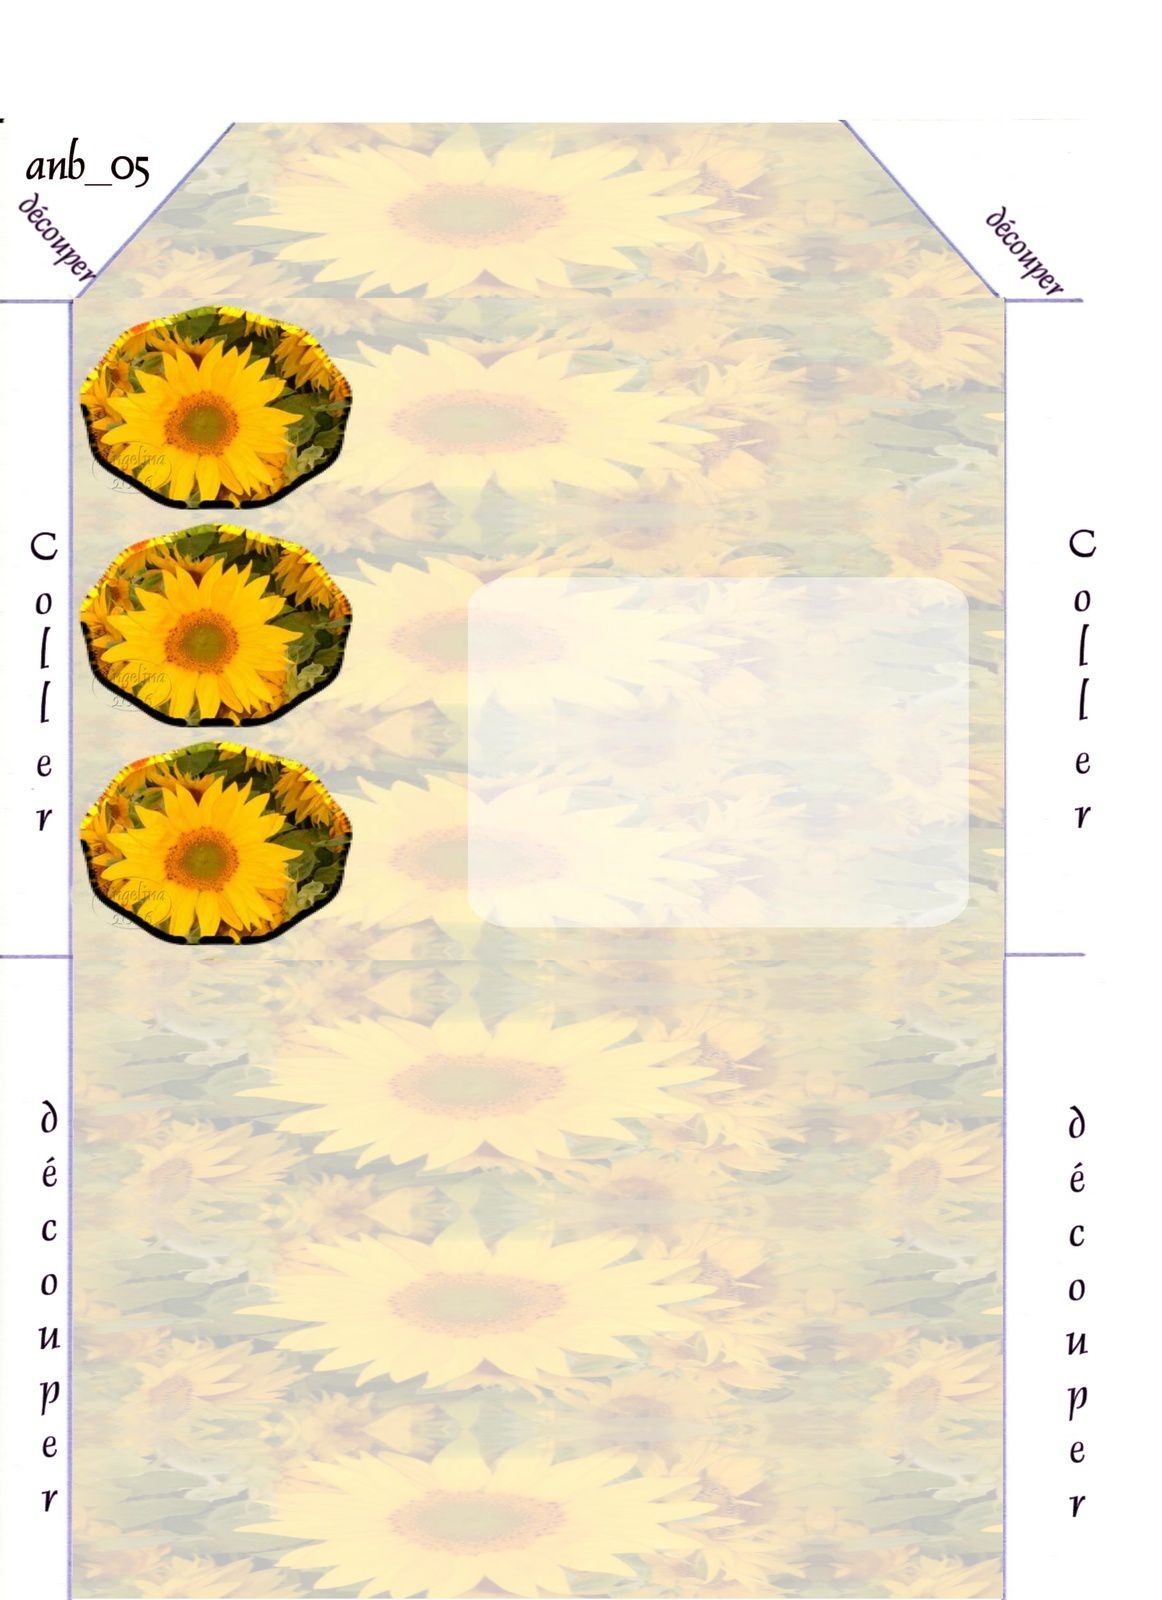 Tournesol Incredimail &amp&#x3B; Papier A4 h l &amp&#x3B; outlook &amp&#x3B; enveloppe &amp&#x3B; 2 cartes A5 &amp&#x3B; signets 3 langues    tournesol_murzeau_fleurs2005